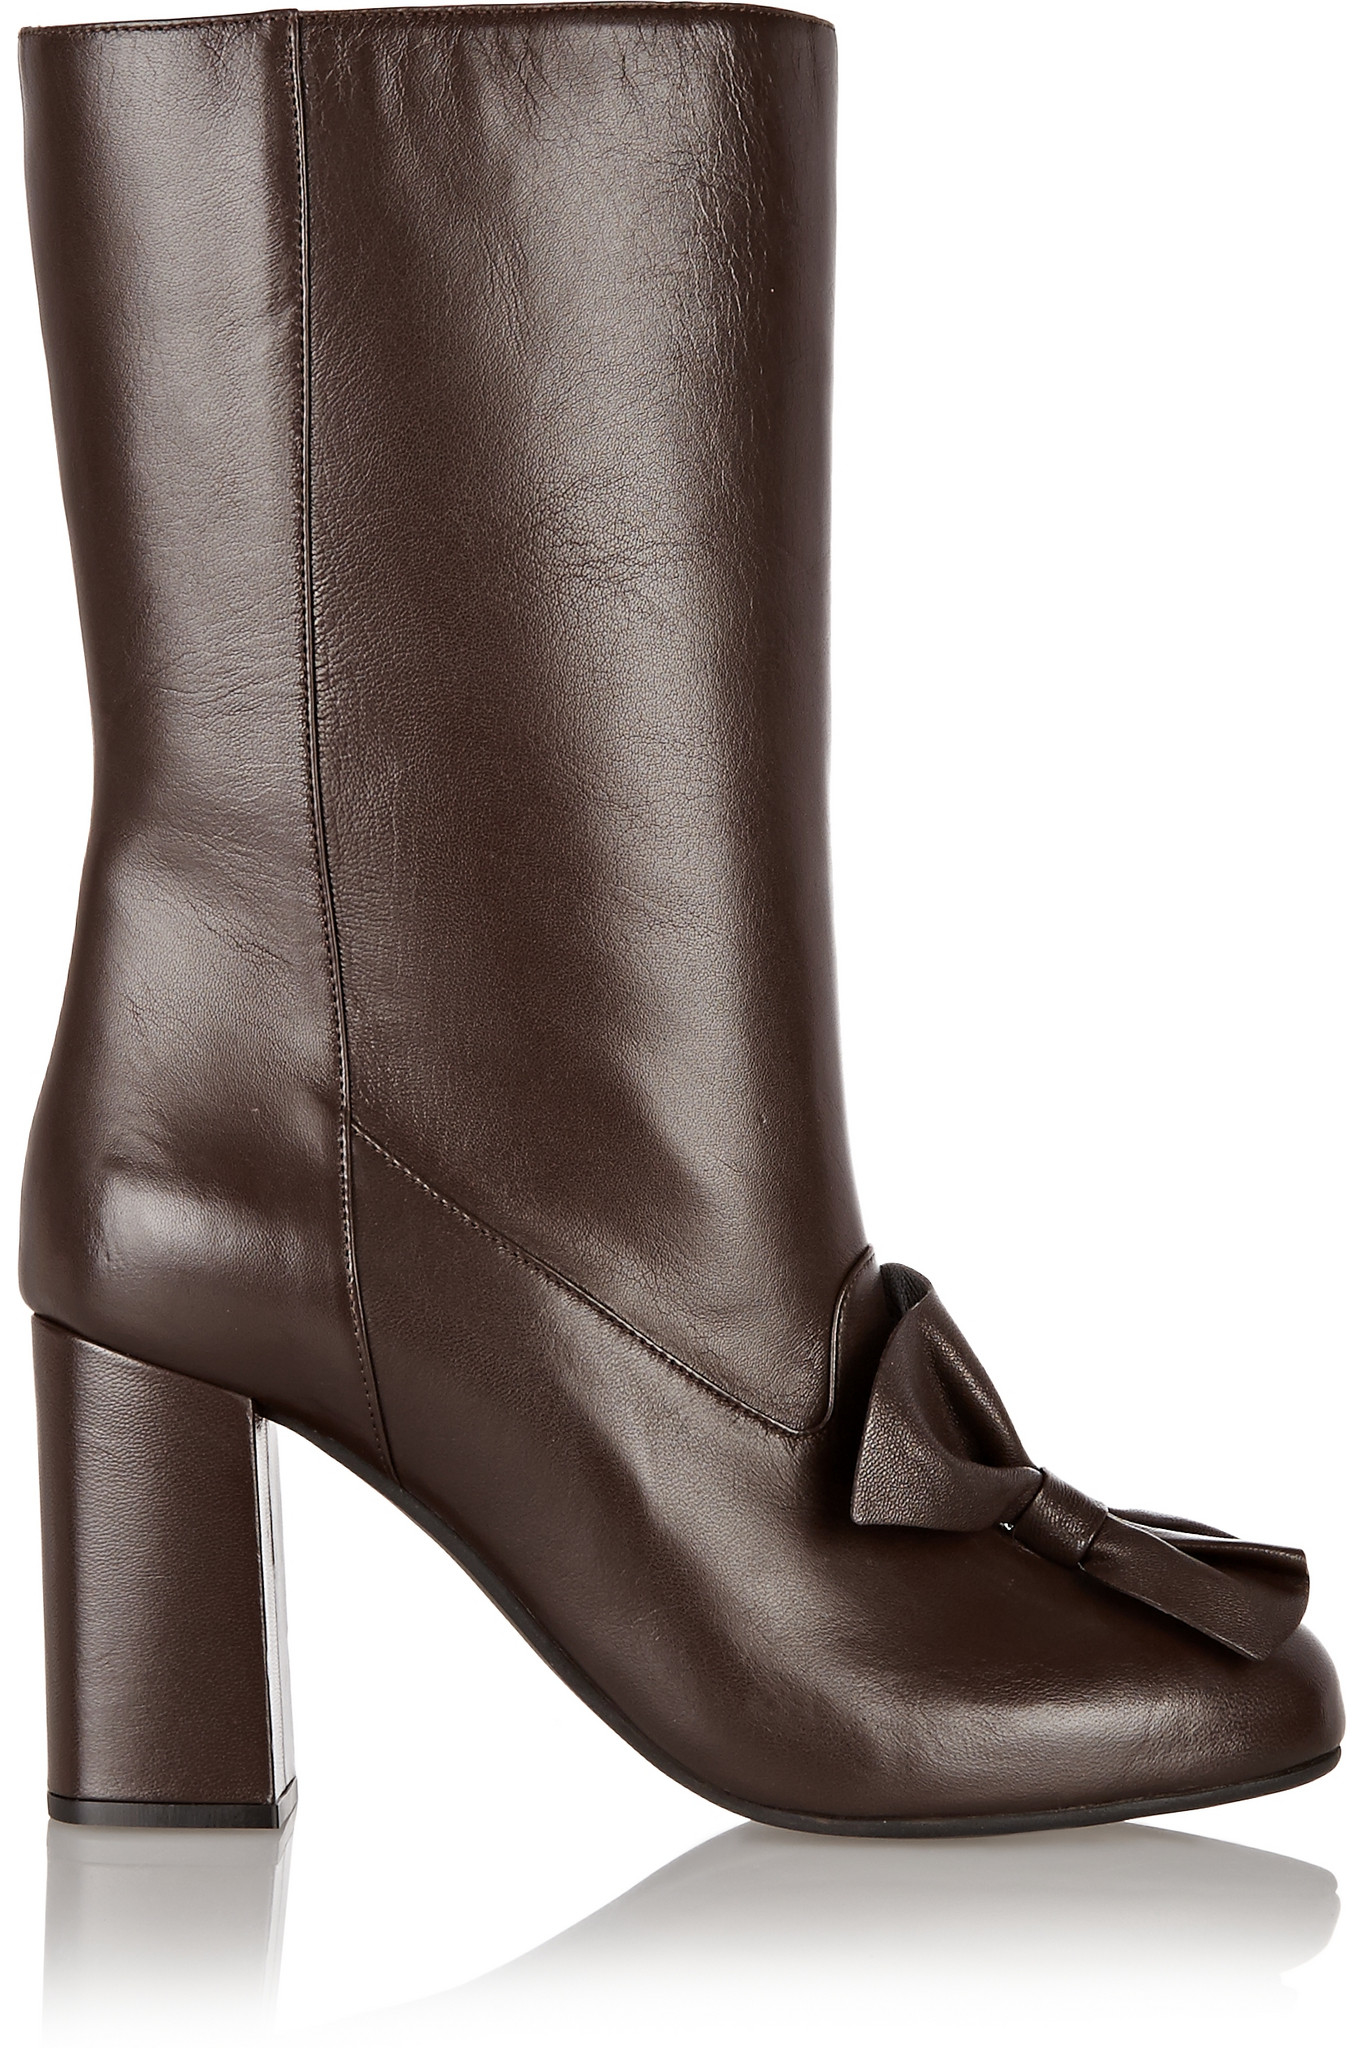 Pre-owned - Leather buckled boots Marni PwcoPcE